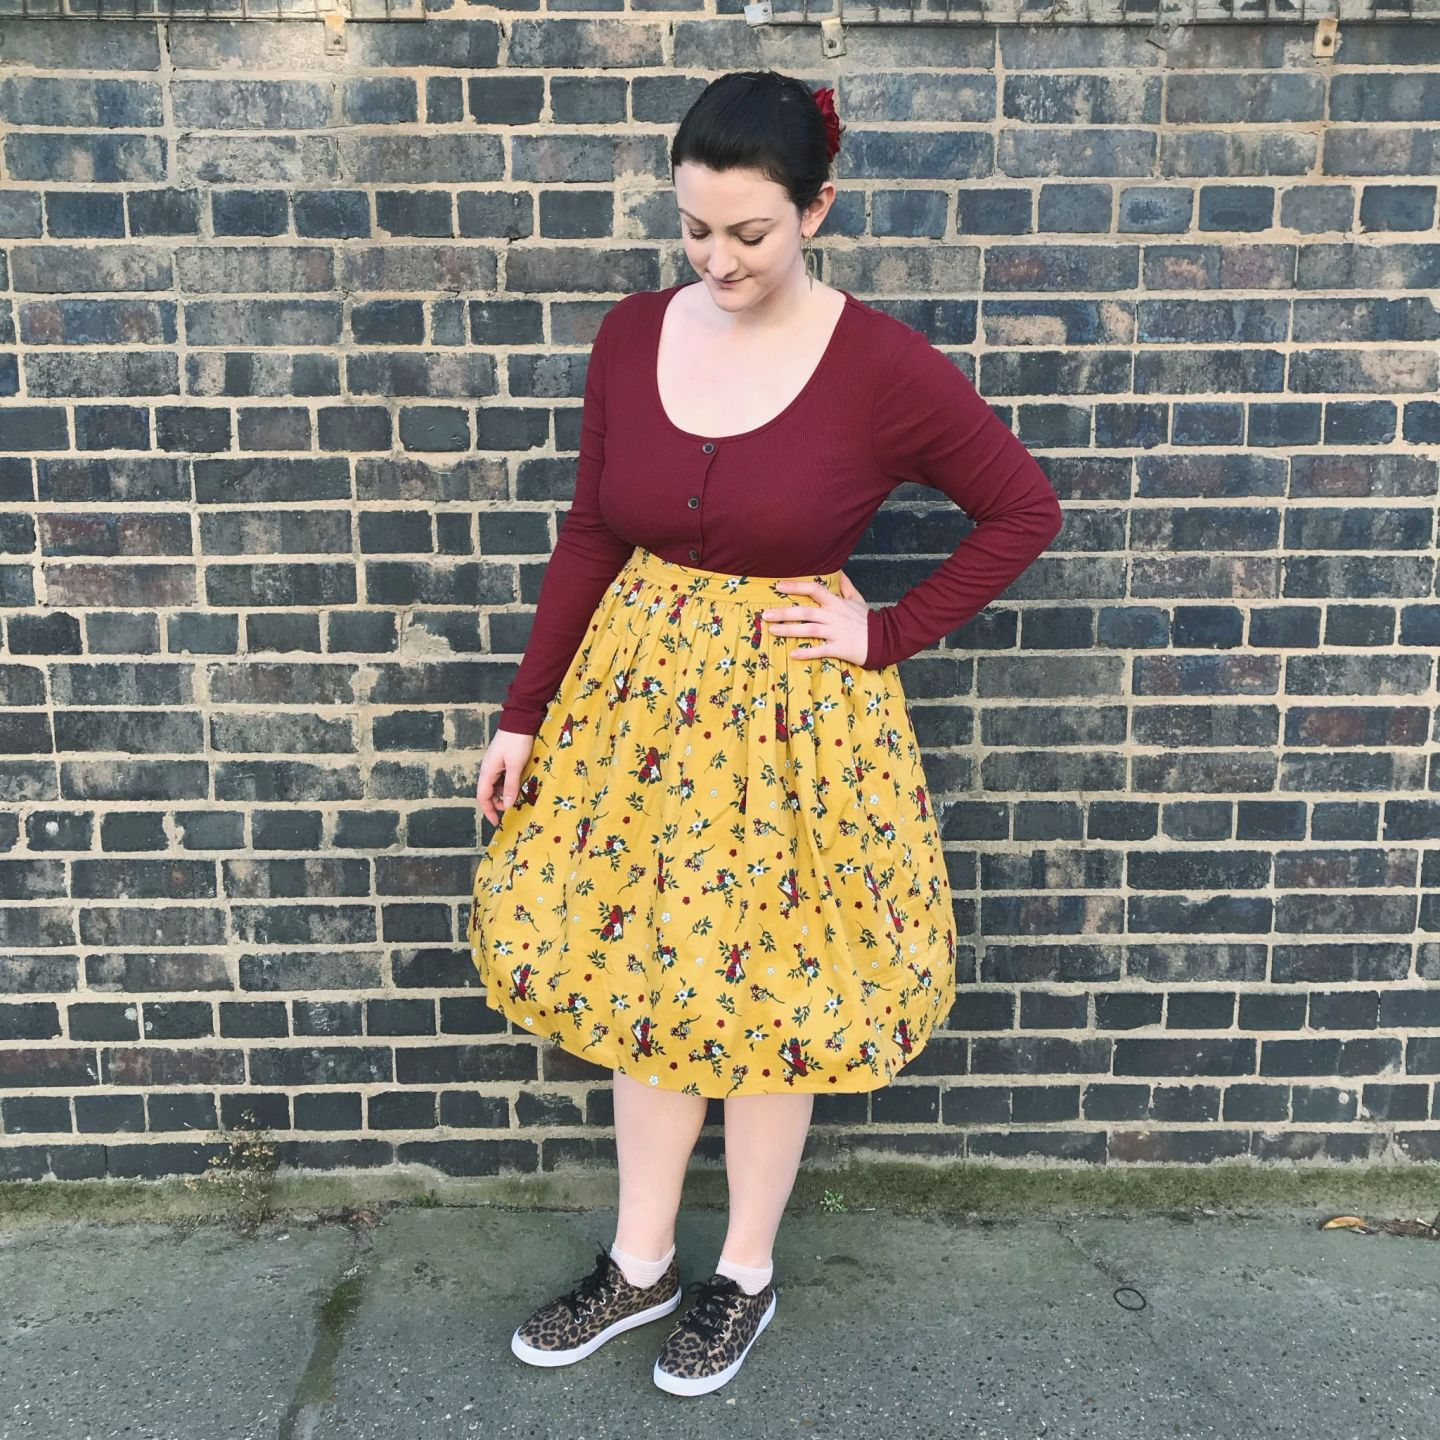 Outfit of the day: dressed down 50s/mainstream mashup